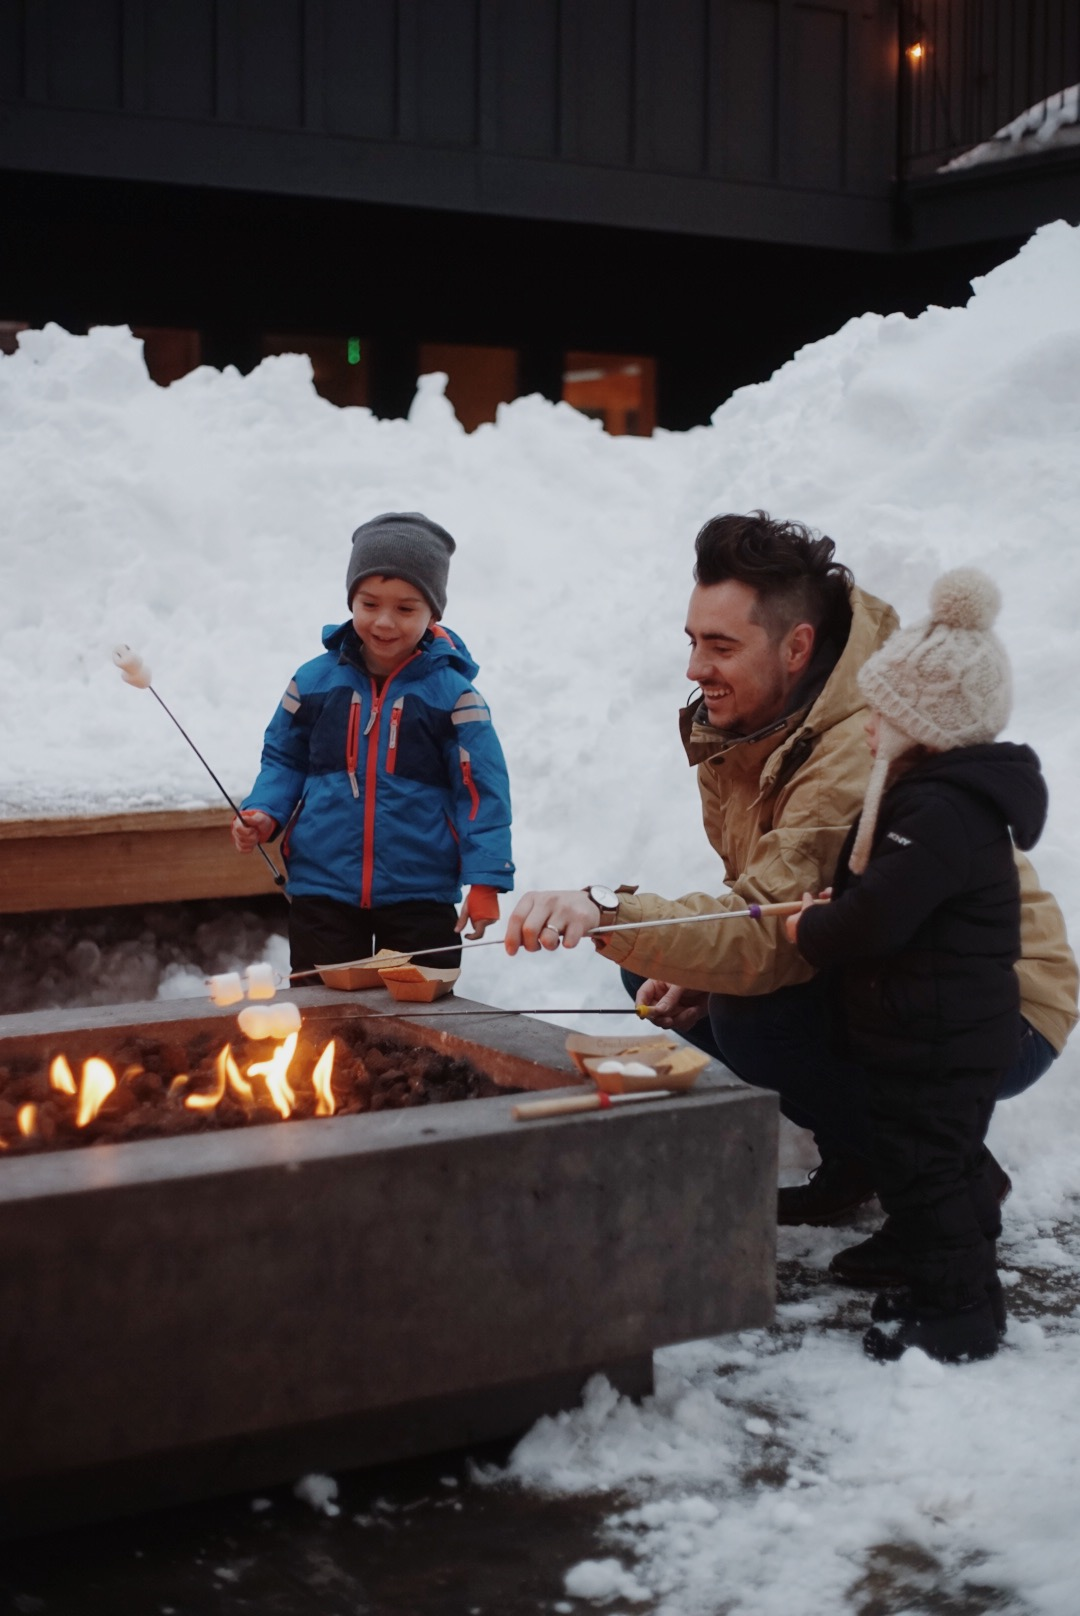 sweet memories around the fire with the whole family. -